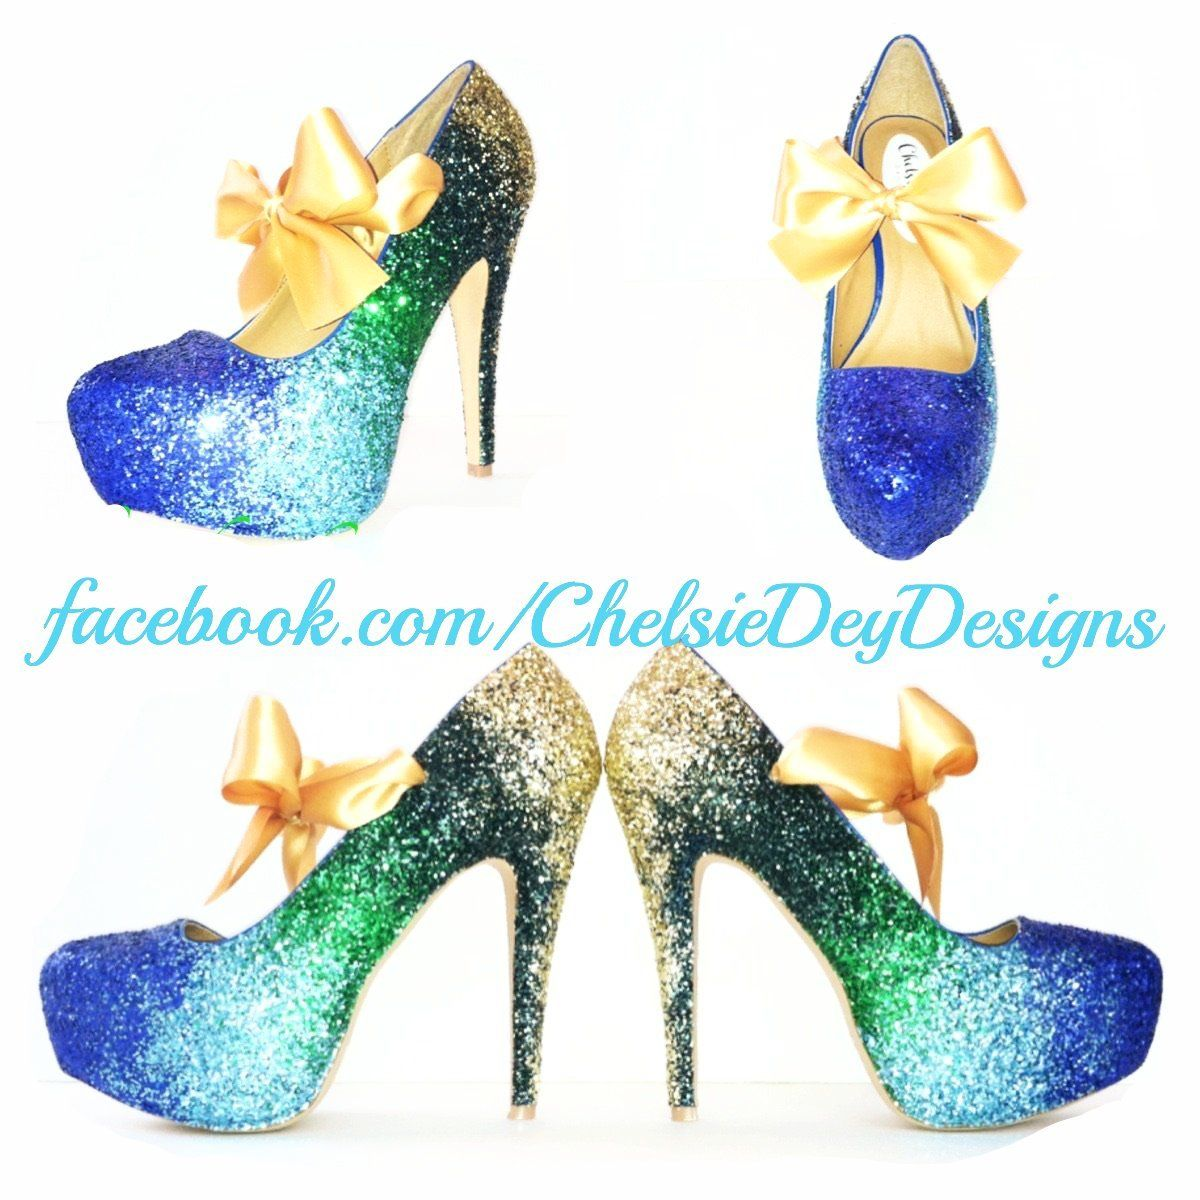 cf0d5f054b77 Peacock Ombre Glitter High Heels, Blue Green Gold Platform Pumps ...